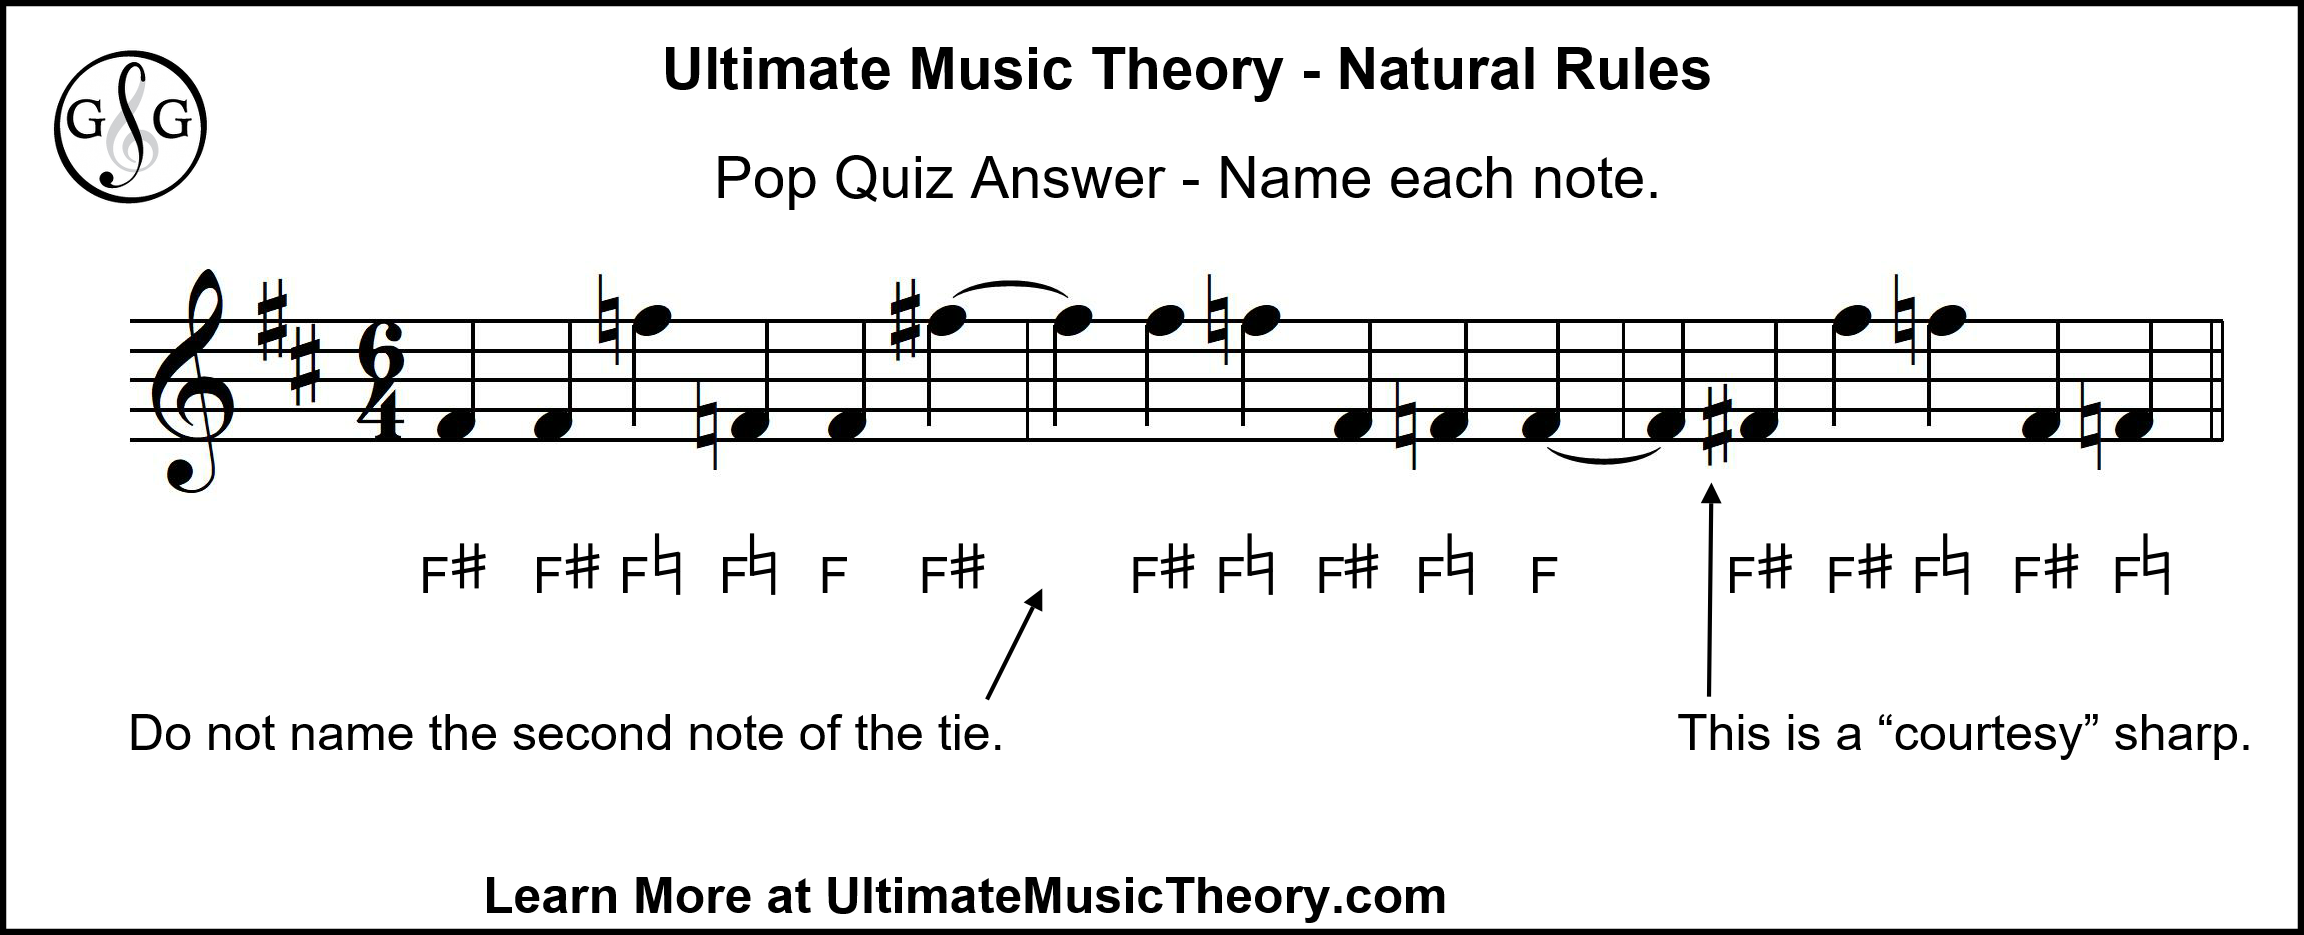 Ultimate Music Theory Natural Rules Pop Quiz Answers